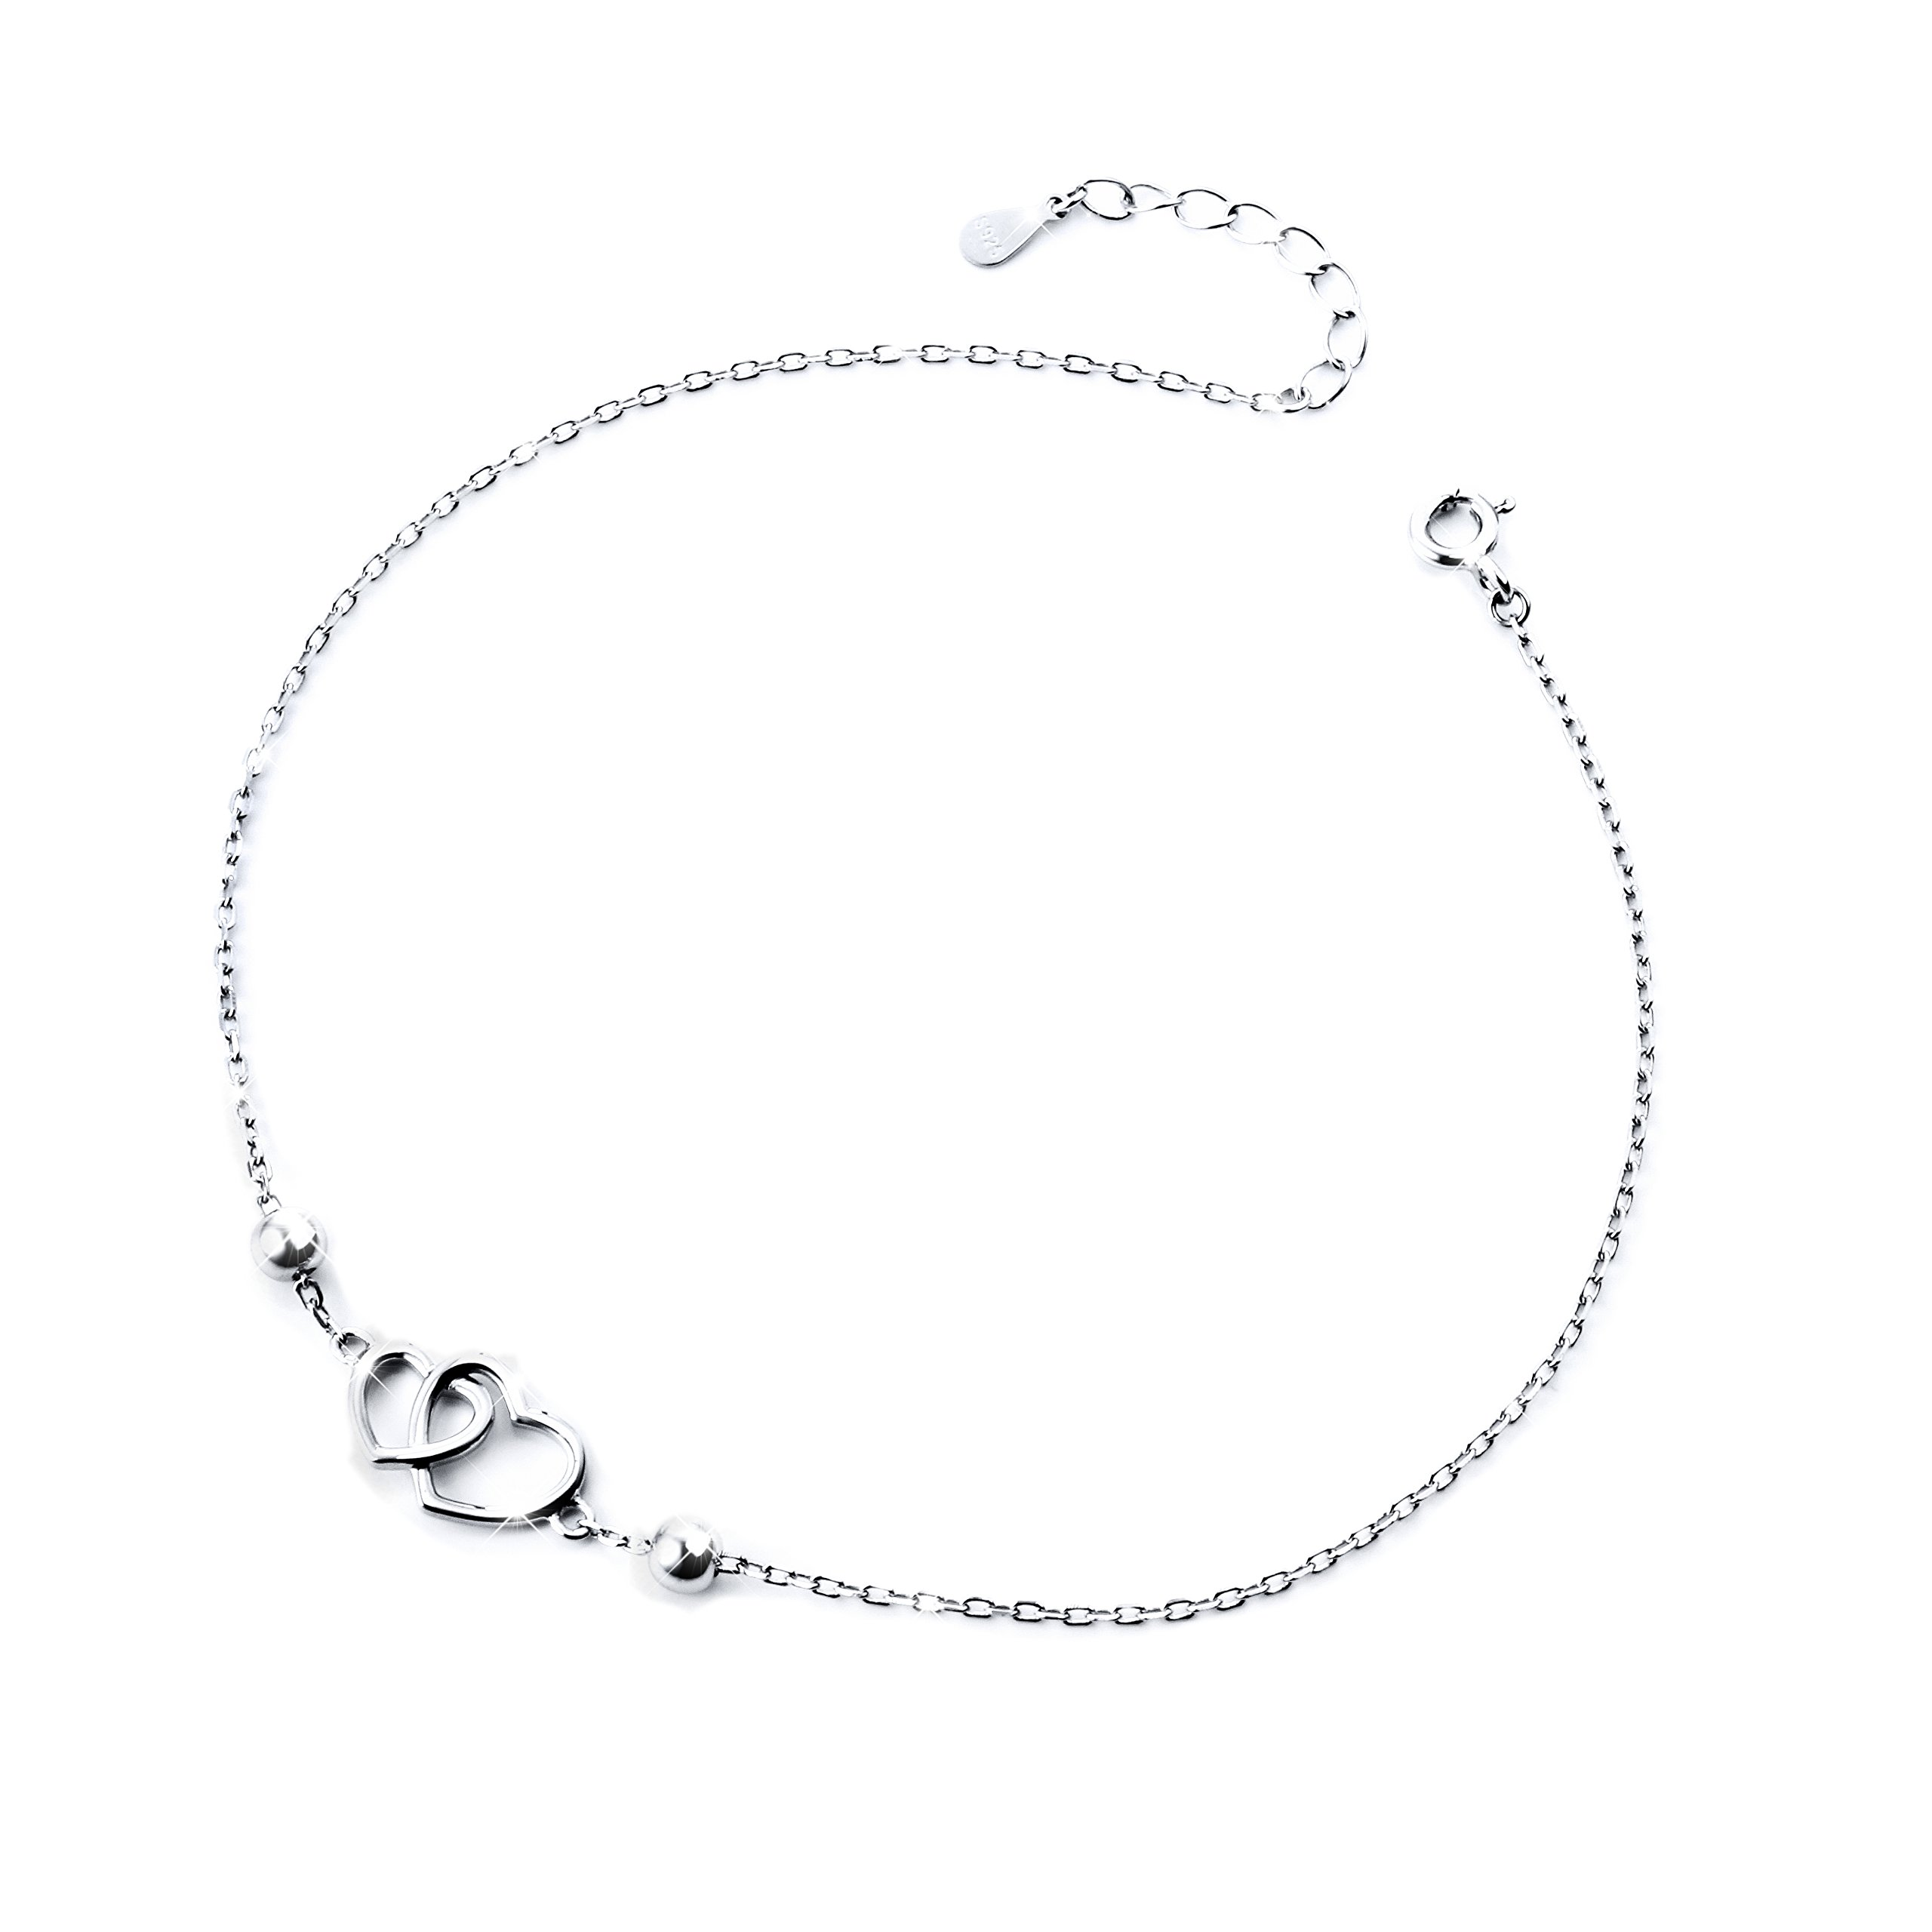 S925 Sterling Silver Anklet for Women Girl Adjustable Beach Style Foot Ankle Bracelet Jewelry (Heart 10 inch)